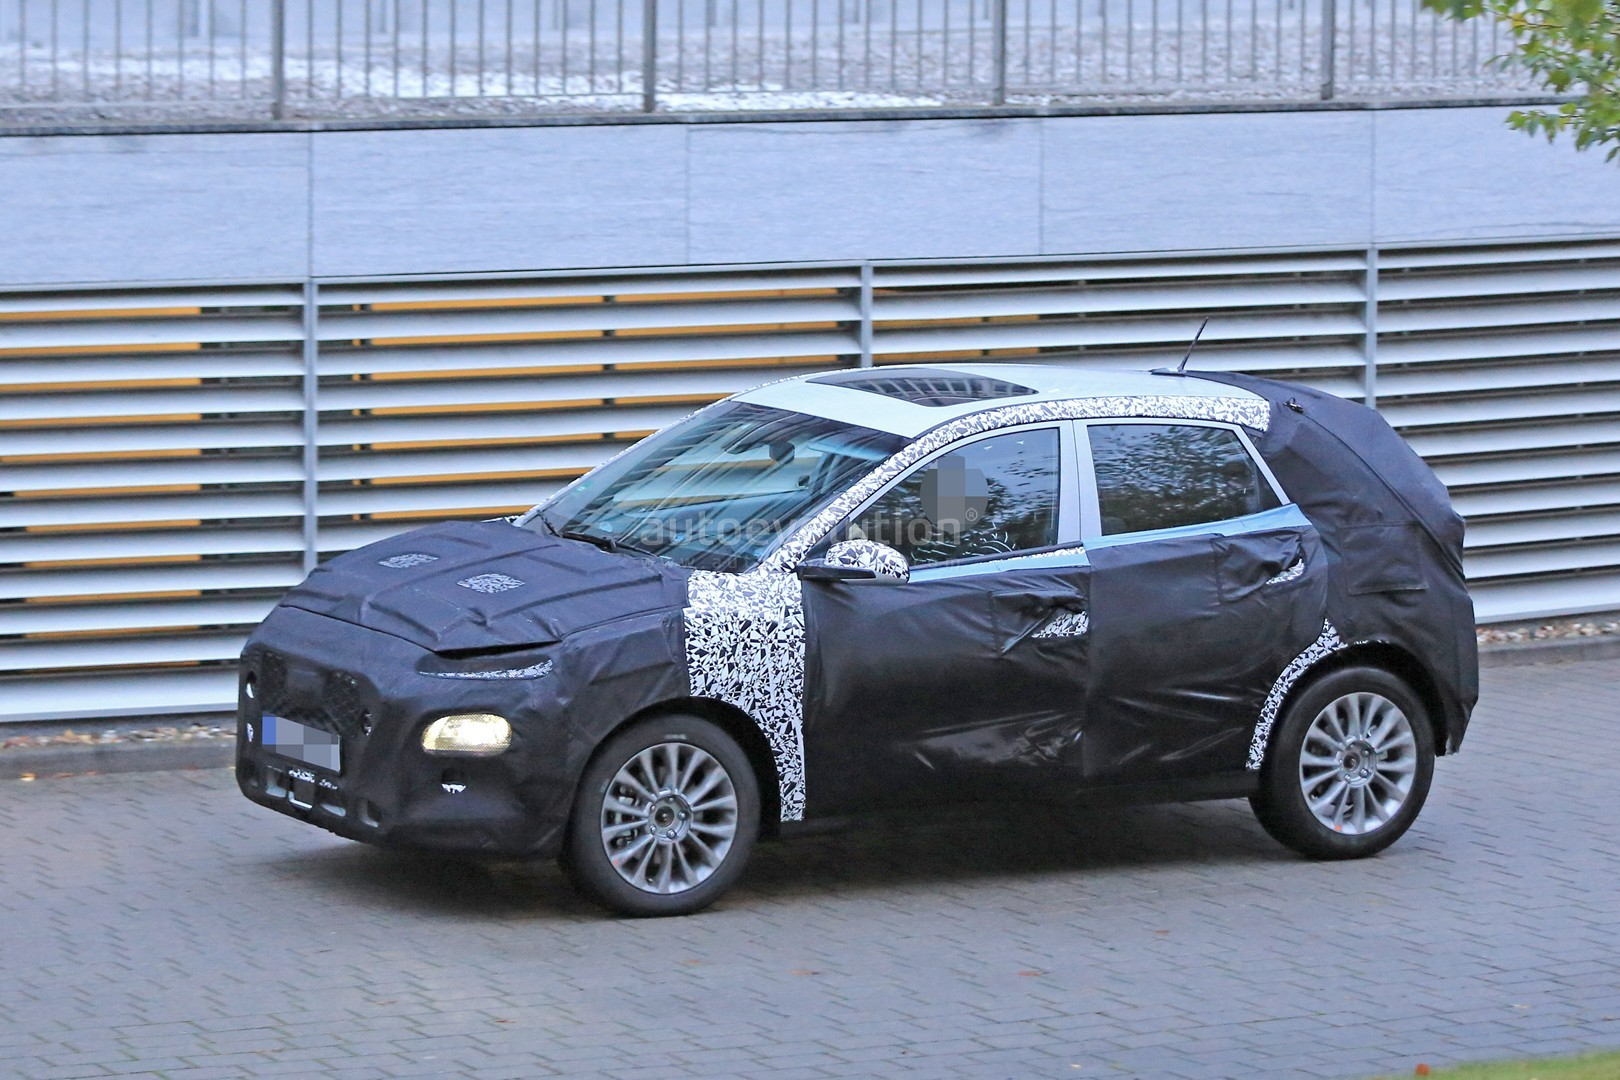 2017 - [Hyundai] Kona - Page 2 Hyundai-b-suv-prototype-spied-with-c4-cactus-face-and-sleek-body_12